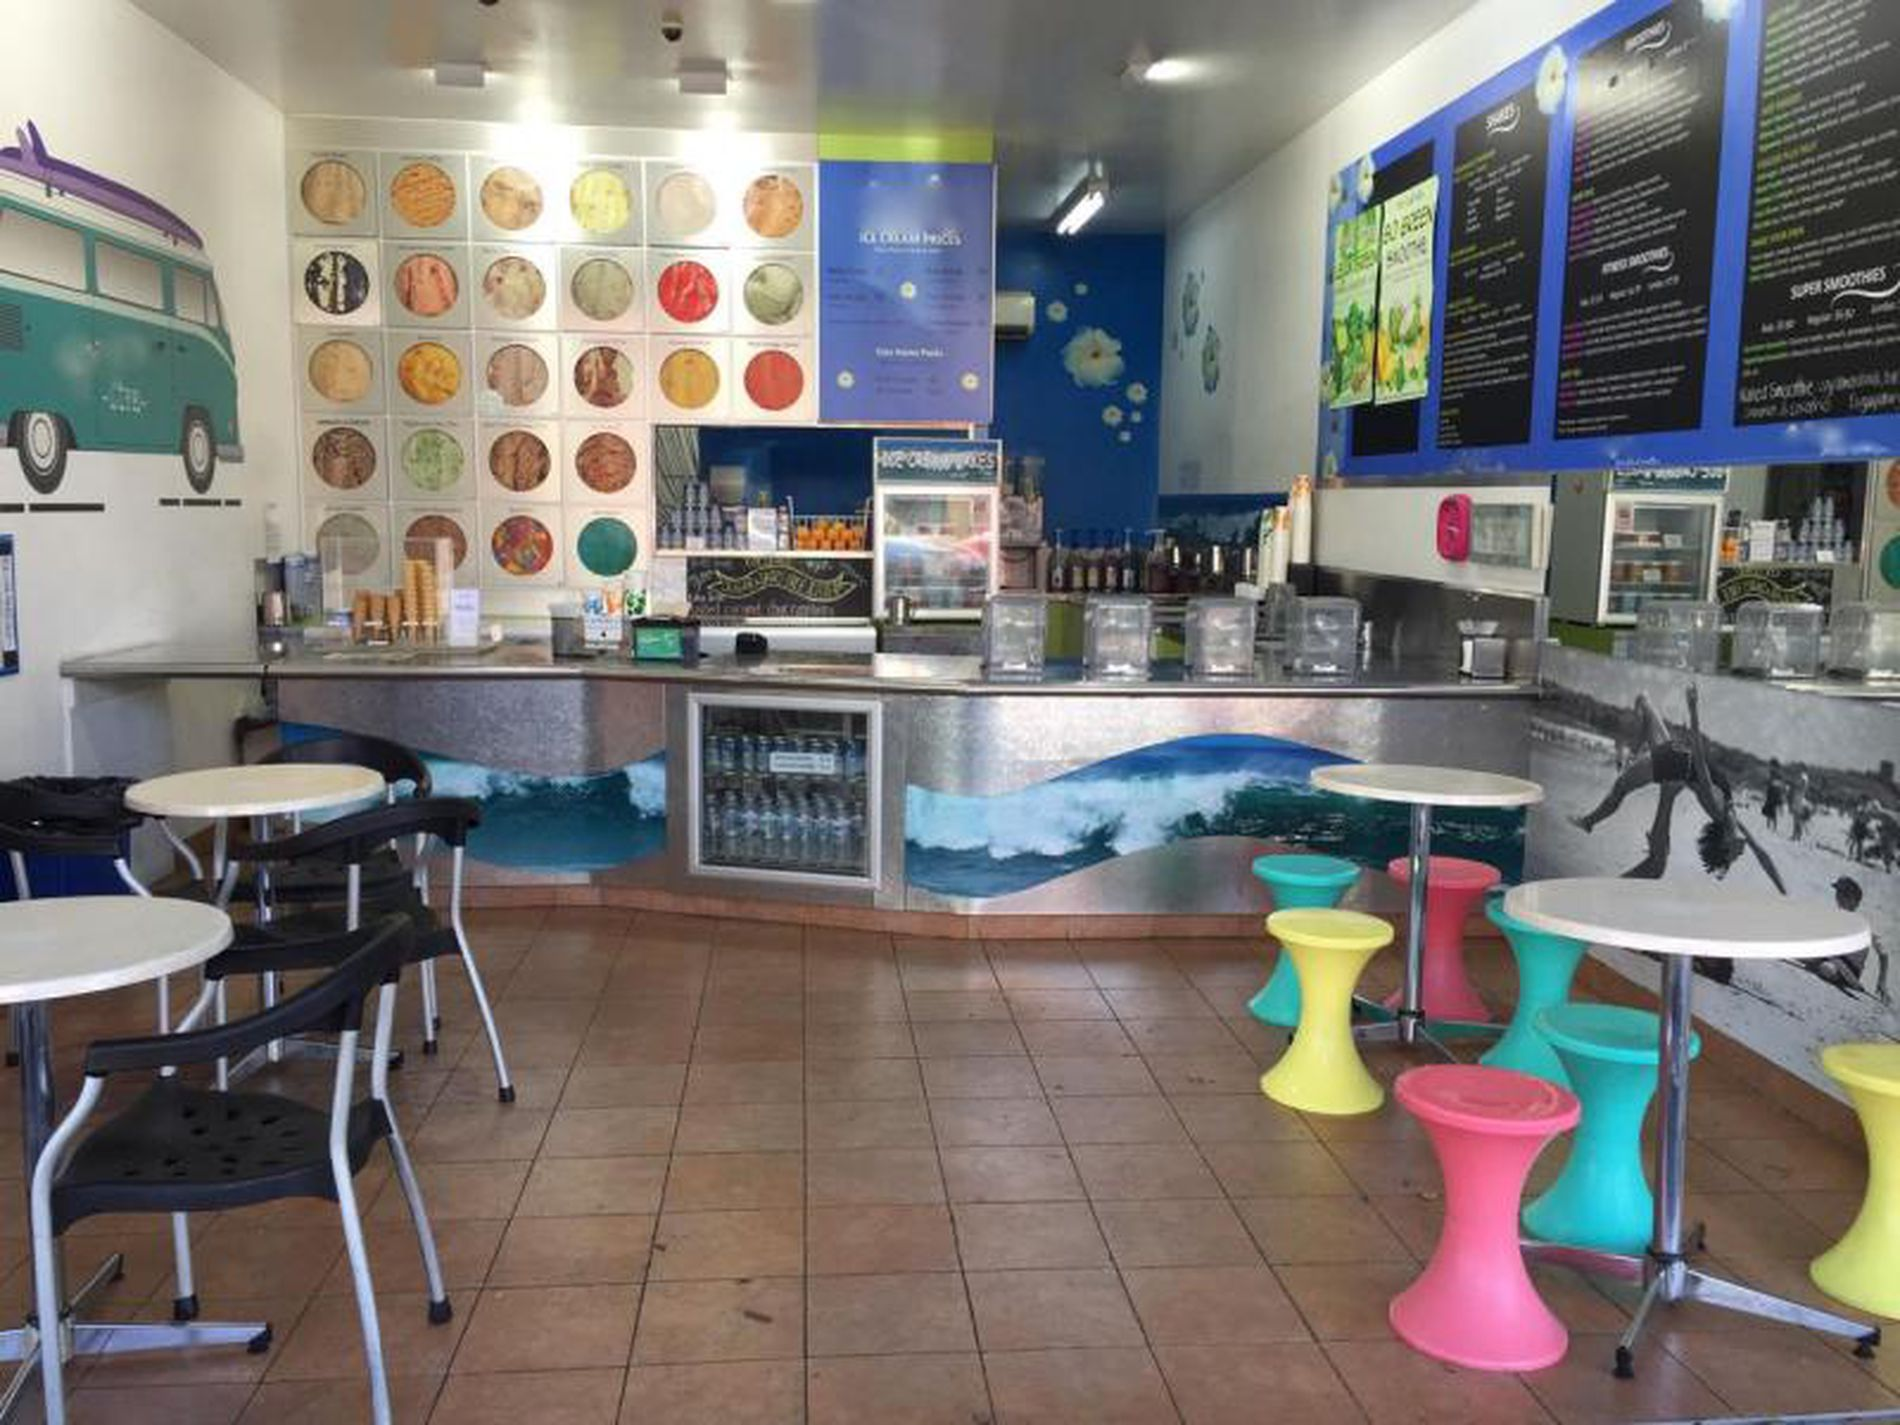 SOLD - Juice and Ice Cream Business For Sale Bayside